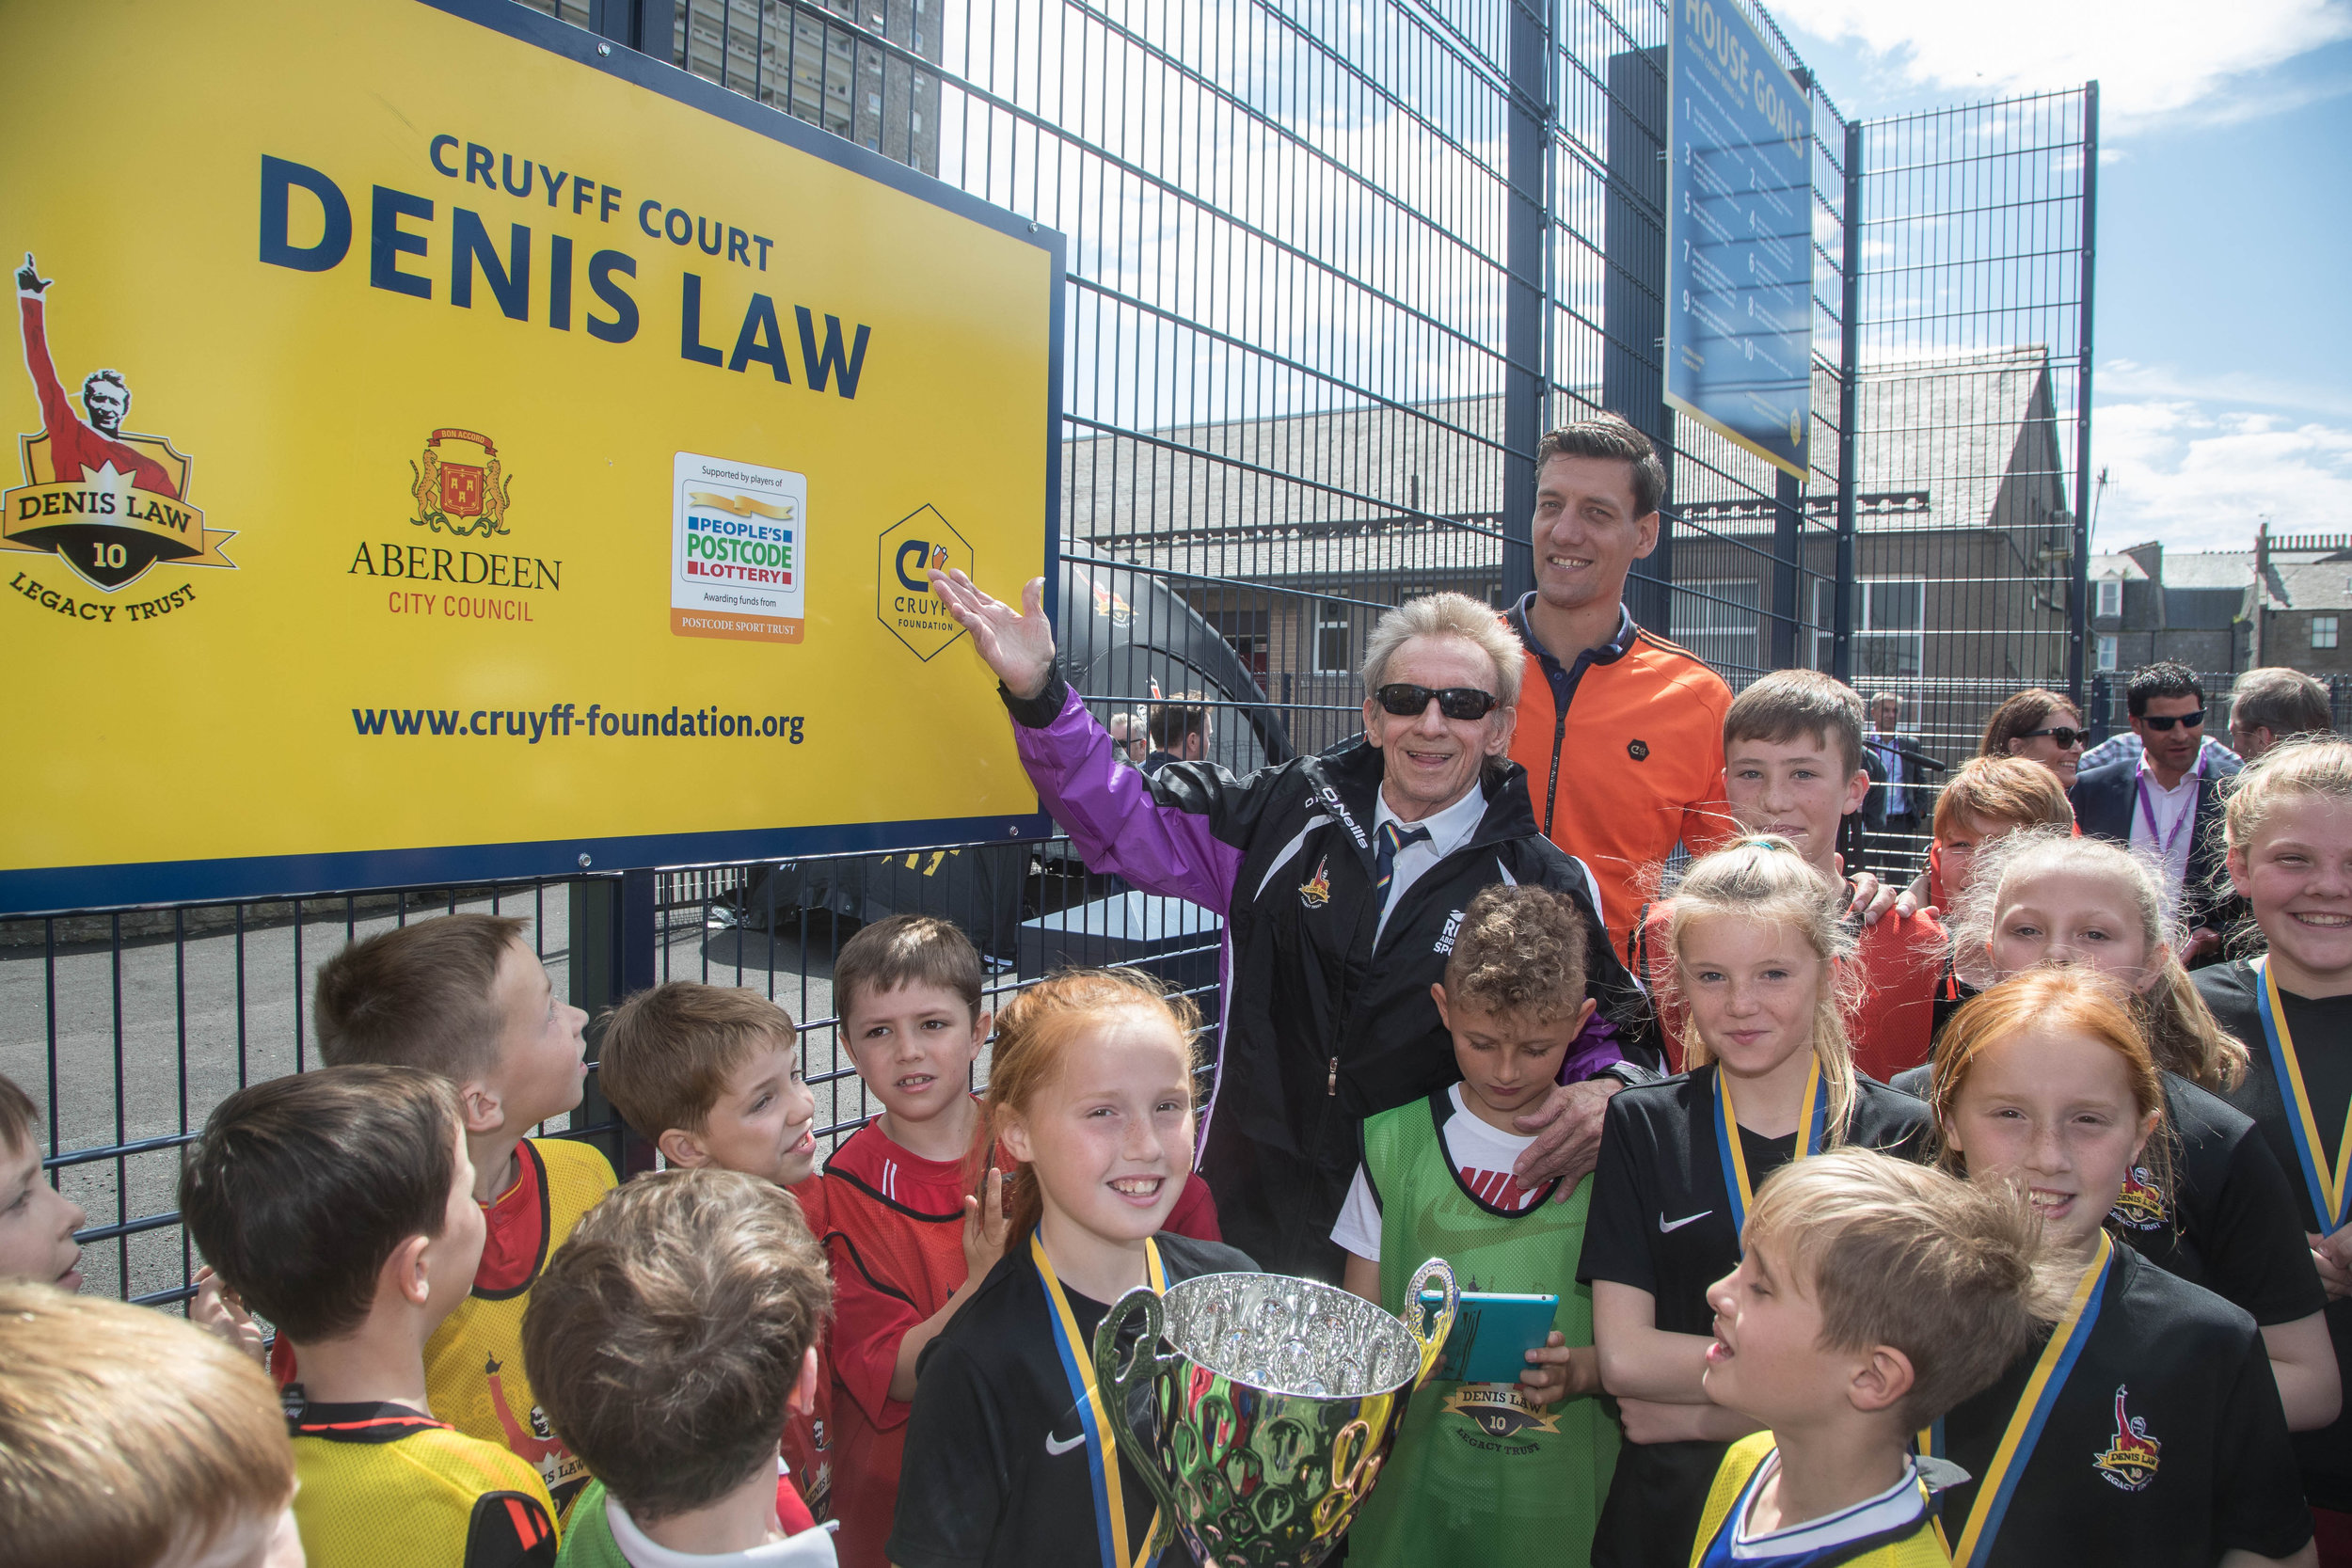 Cruyff Court Denis Law Opening 1.JPG